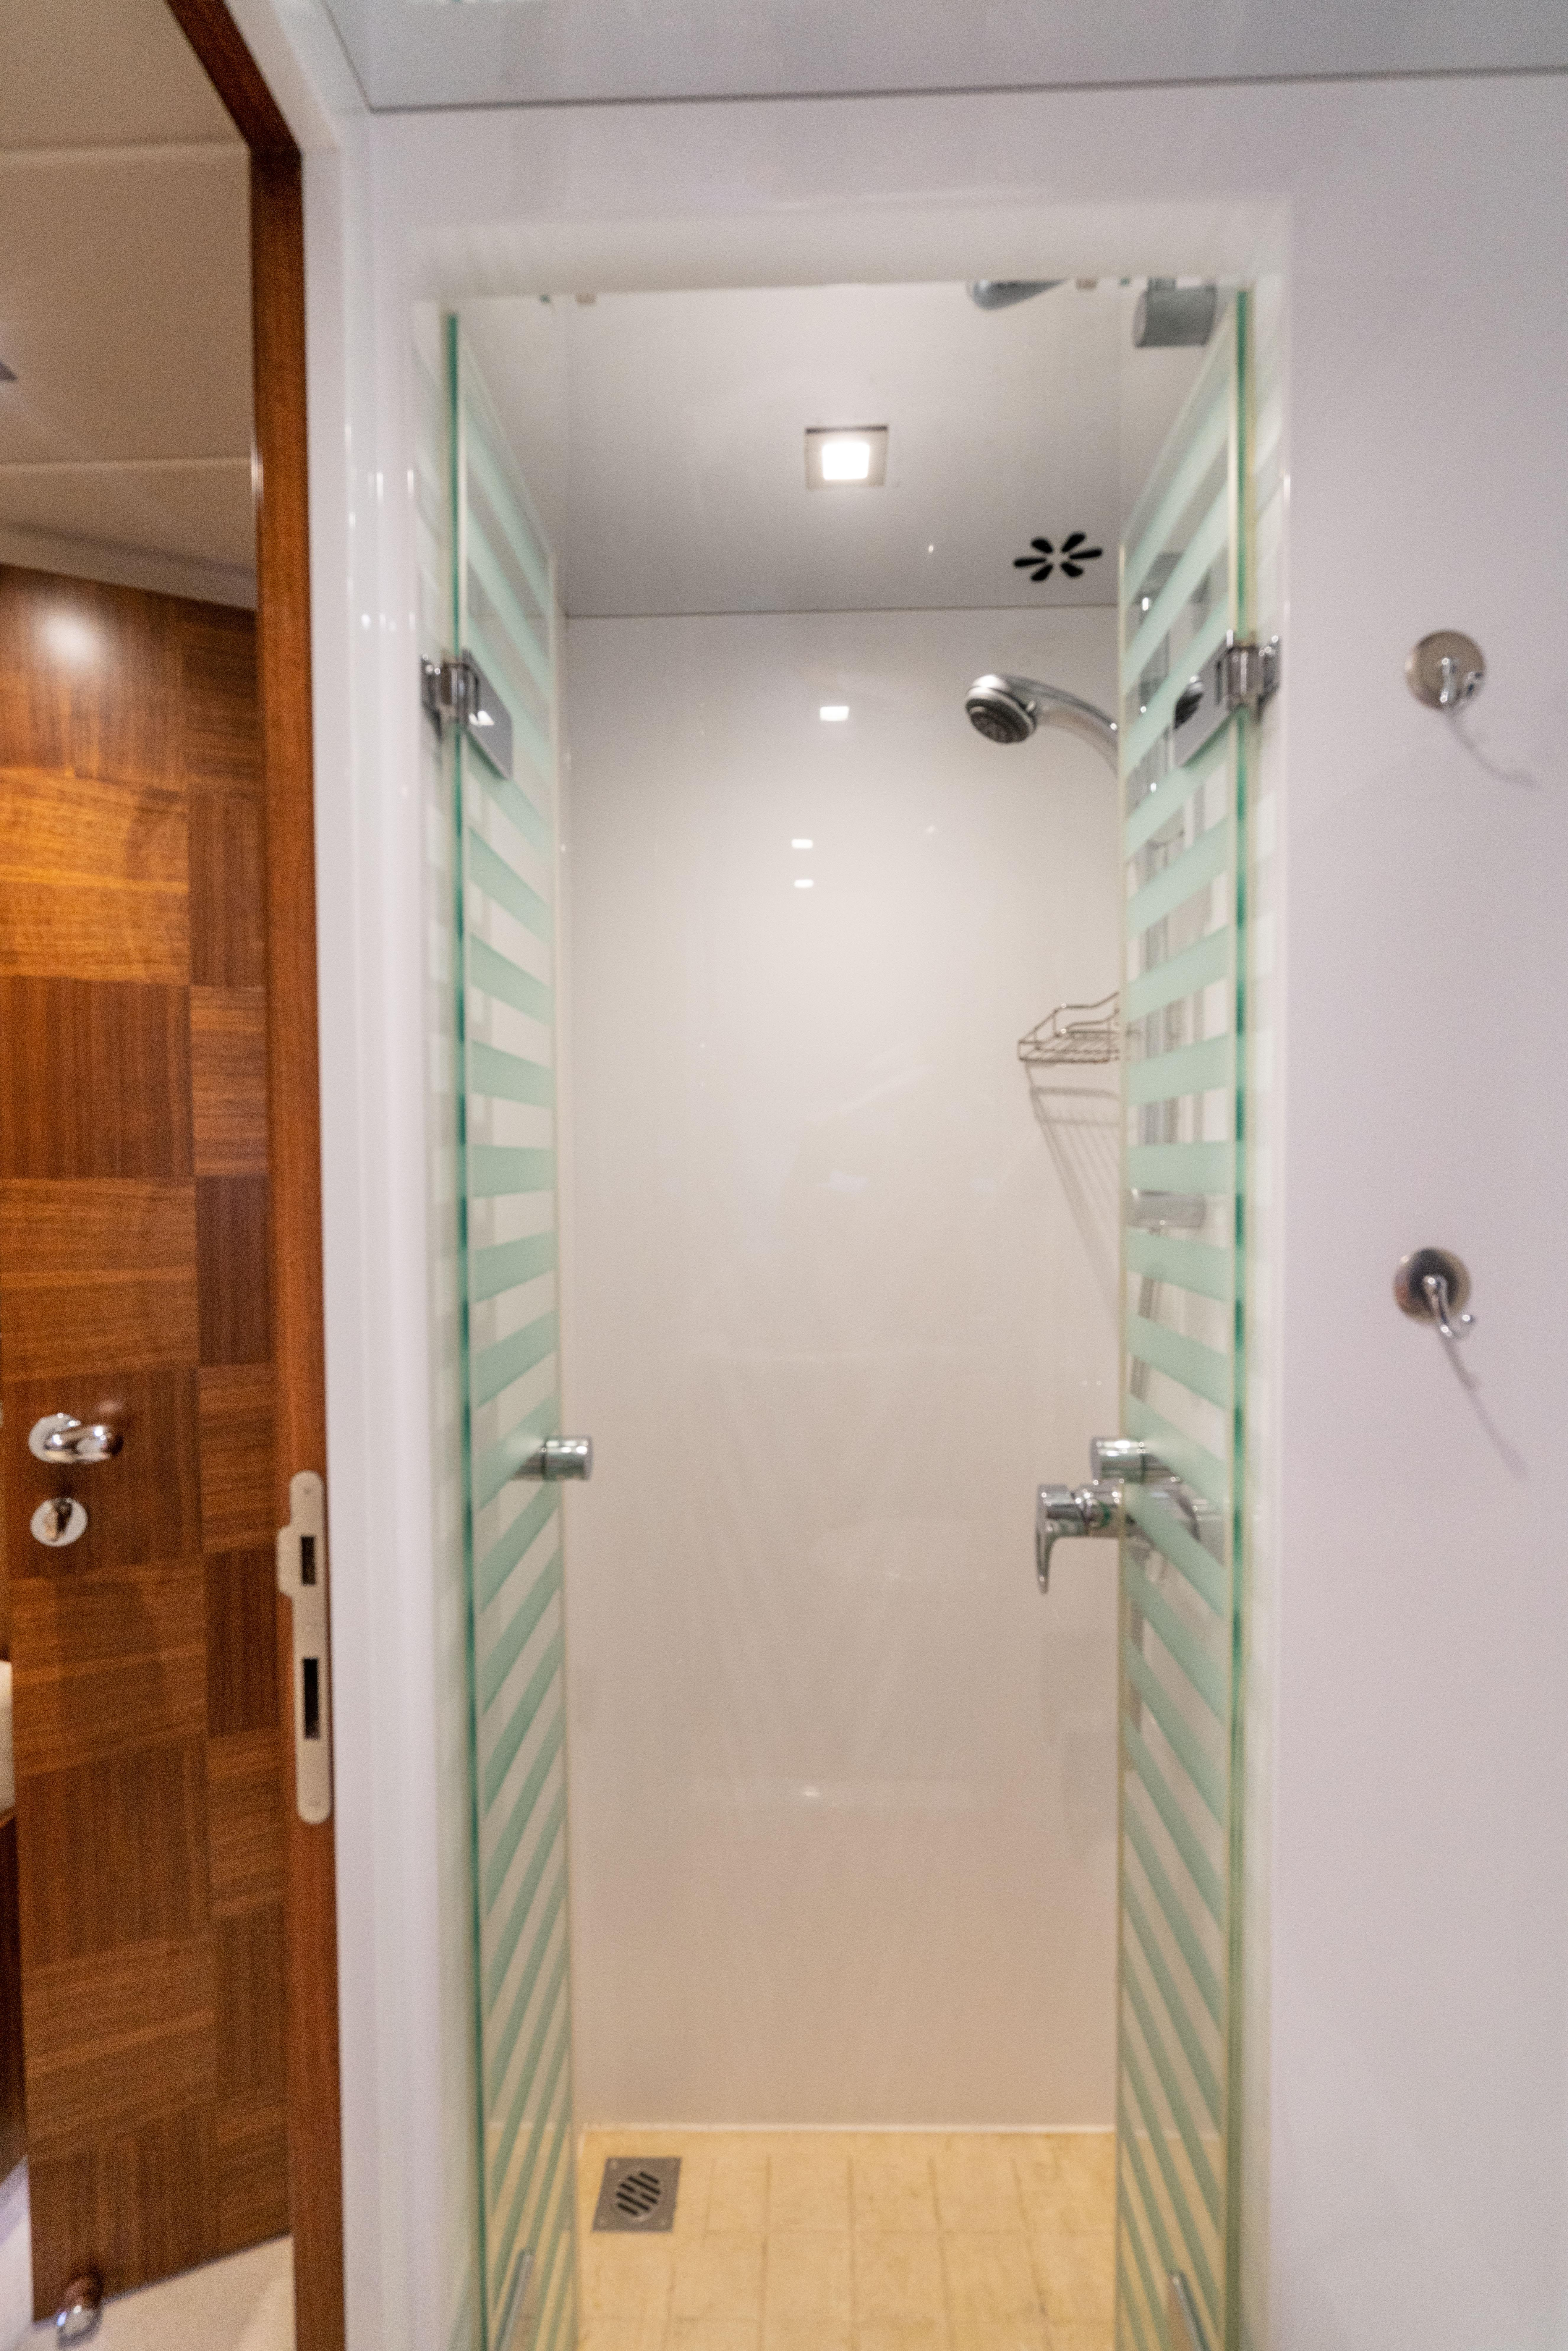 Guest stateroom, stbd twin shower